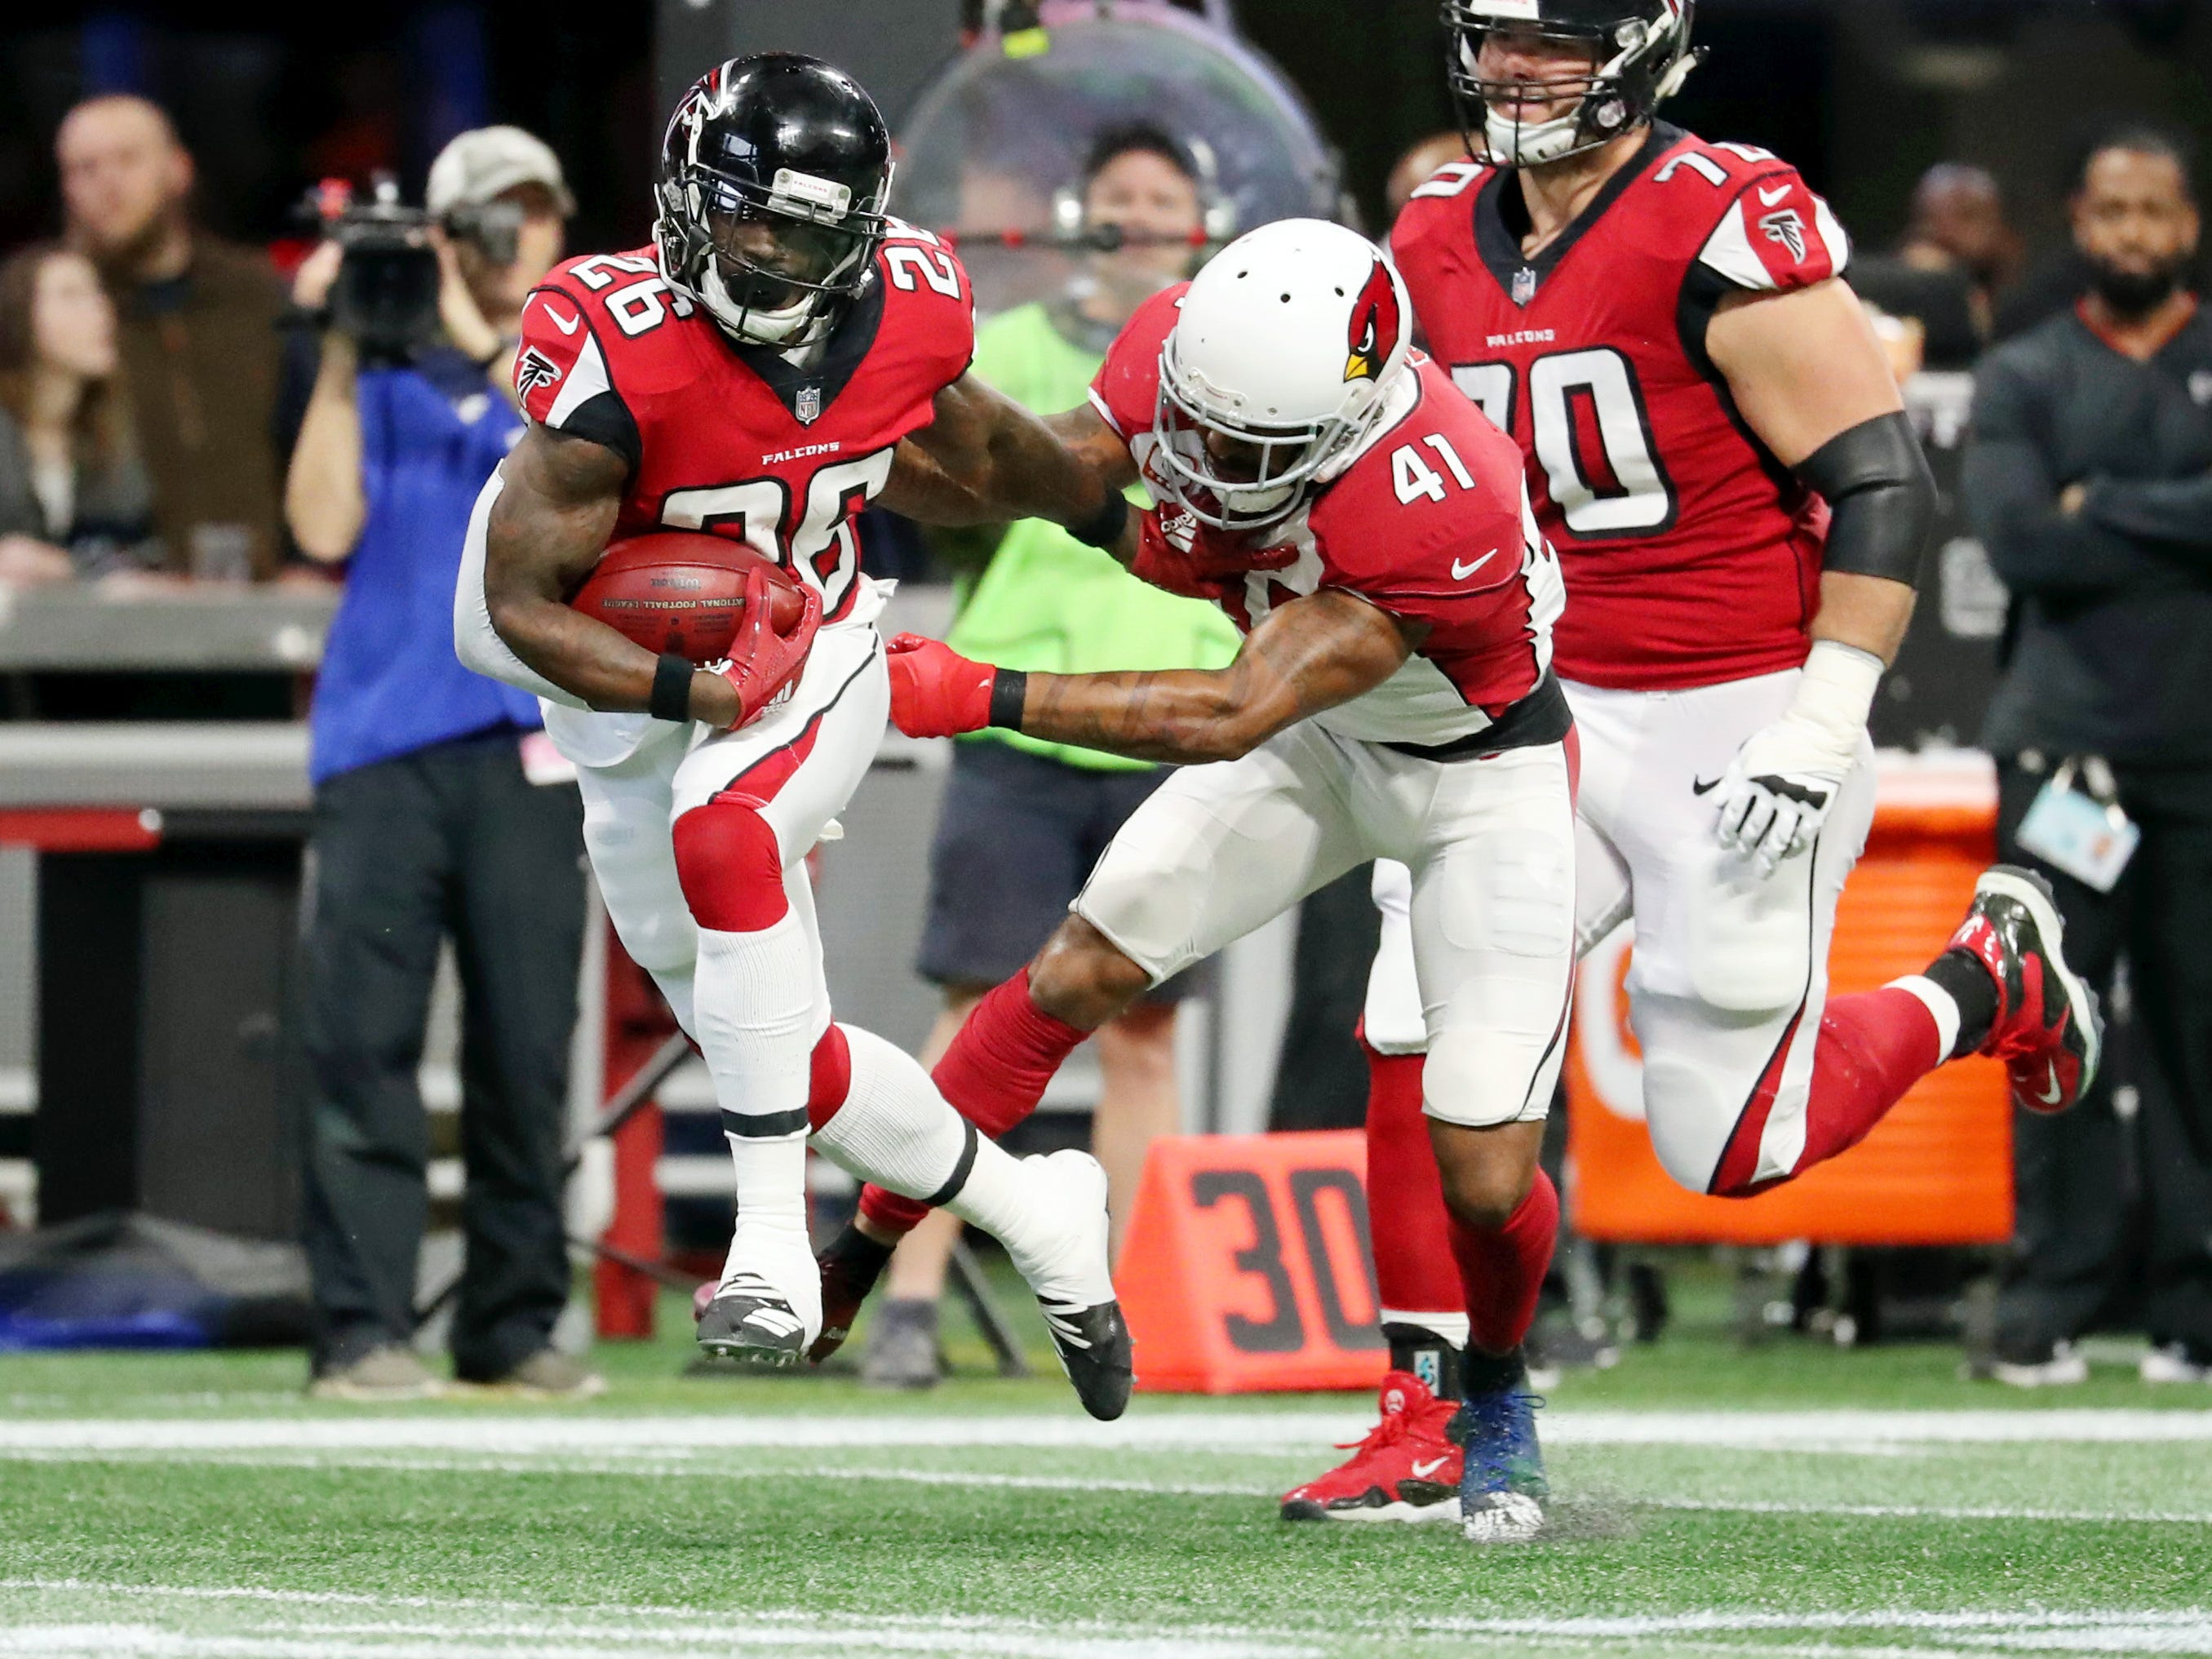 Dec 16, 2018; Atlanta, GA, USA; Atlanta Falcons running back Tevin Coleman (26) runs against Arizona Cardinals free safety Antoine Bethea (41) on a long run in the first quarter at Mercedes-Benz Stadium.